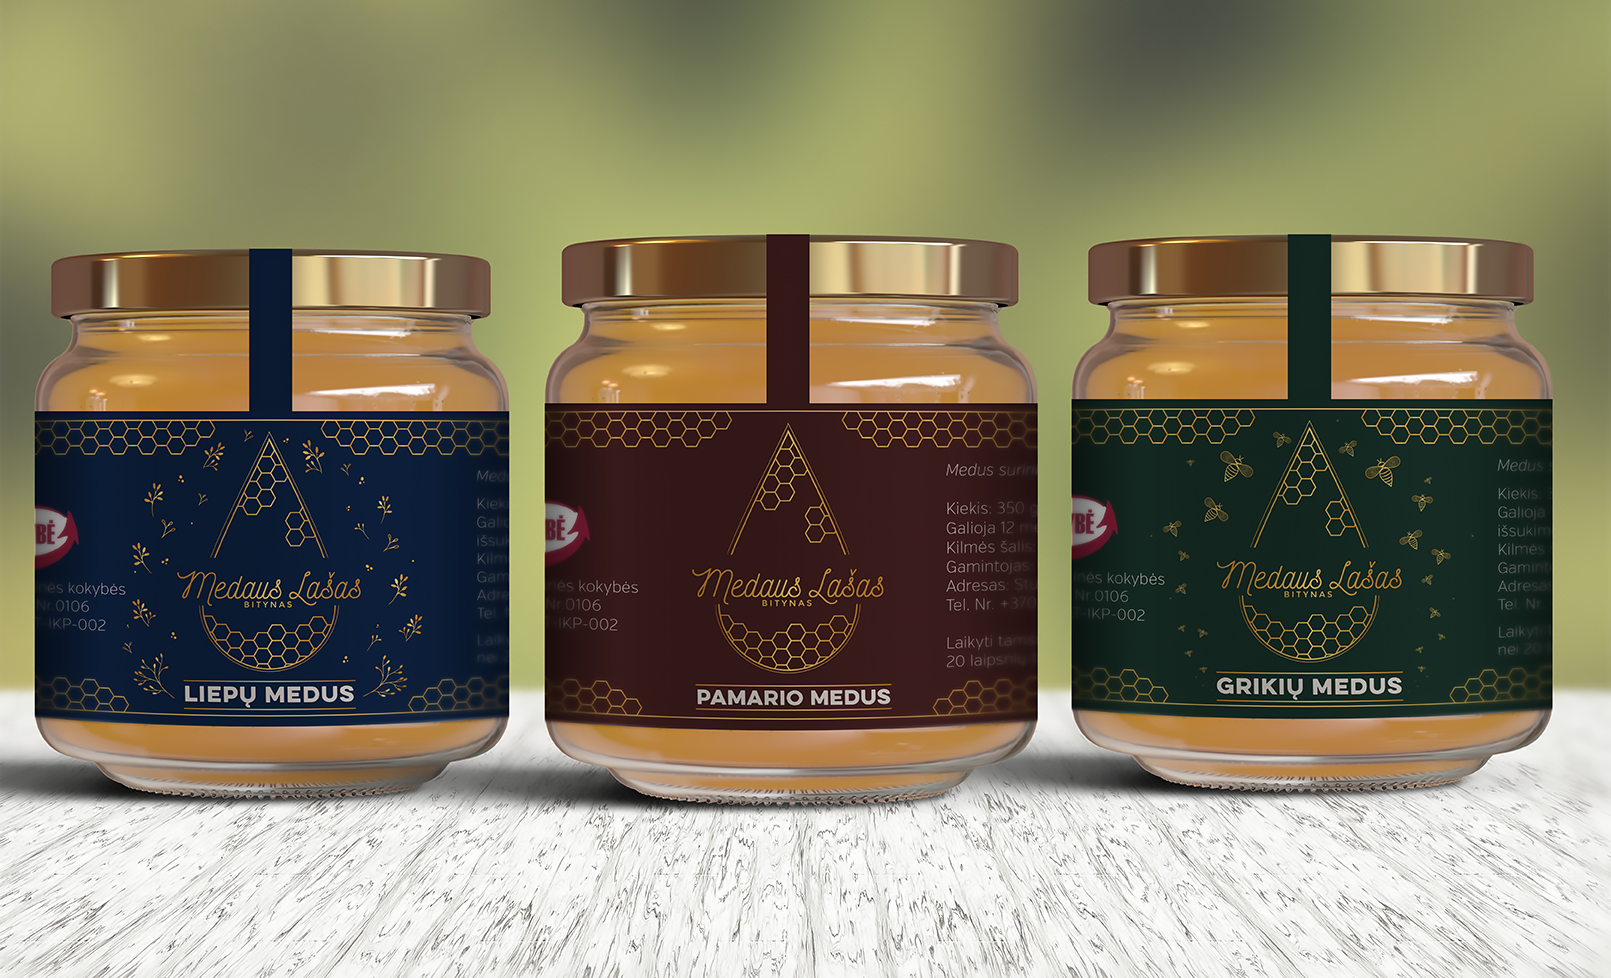 Bespoke Packaging design for Medaus Lašas Apiary mockups